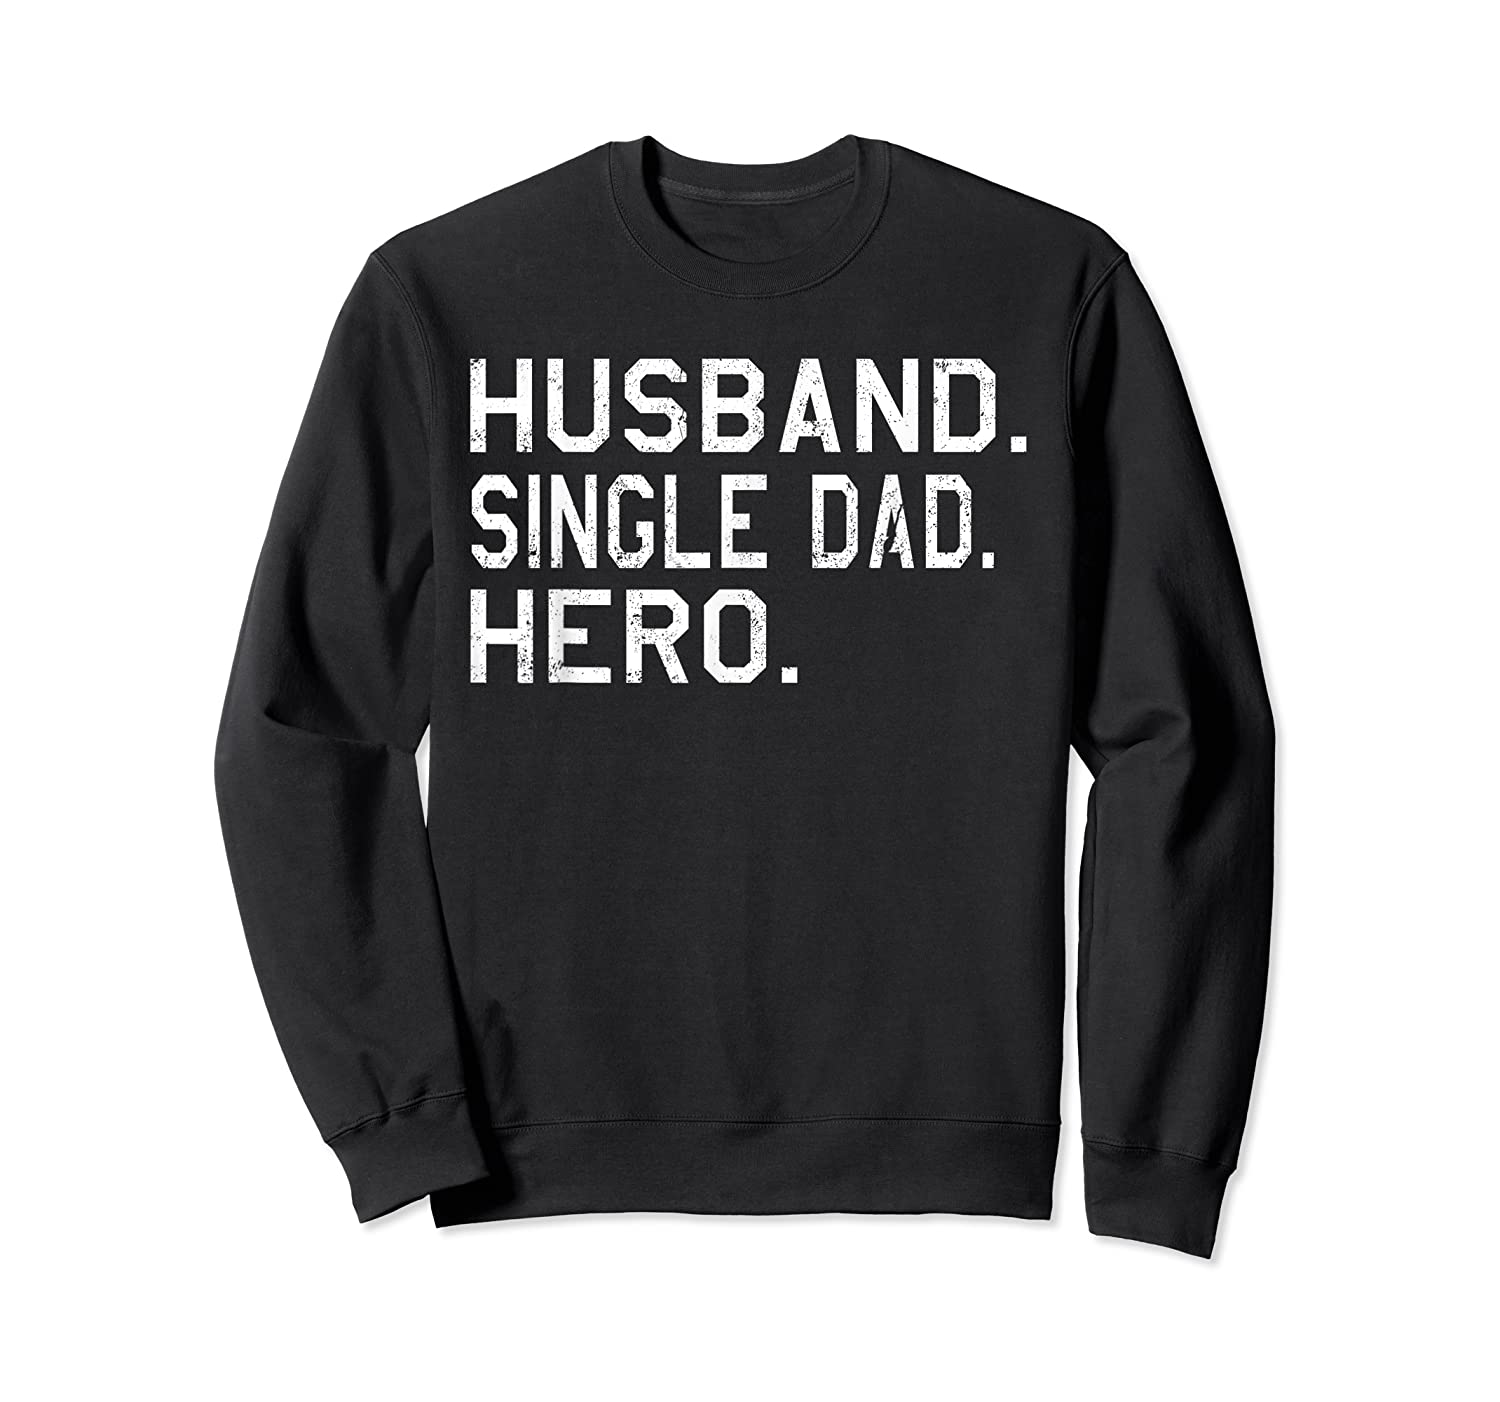 Fathers Day Gift For Husband Single Dad Hero Funny Shirt Crewneck Sweater